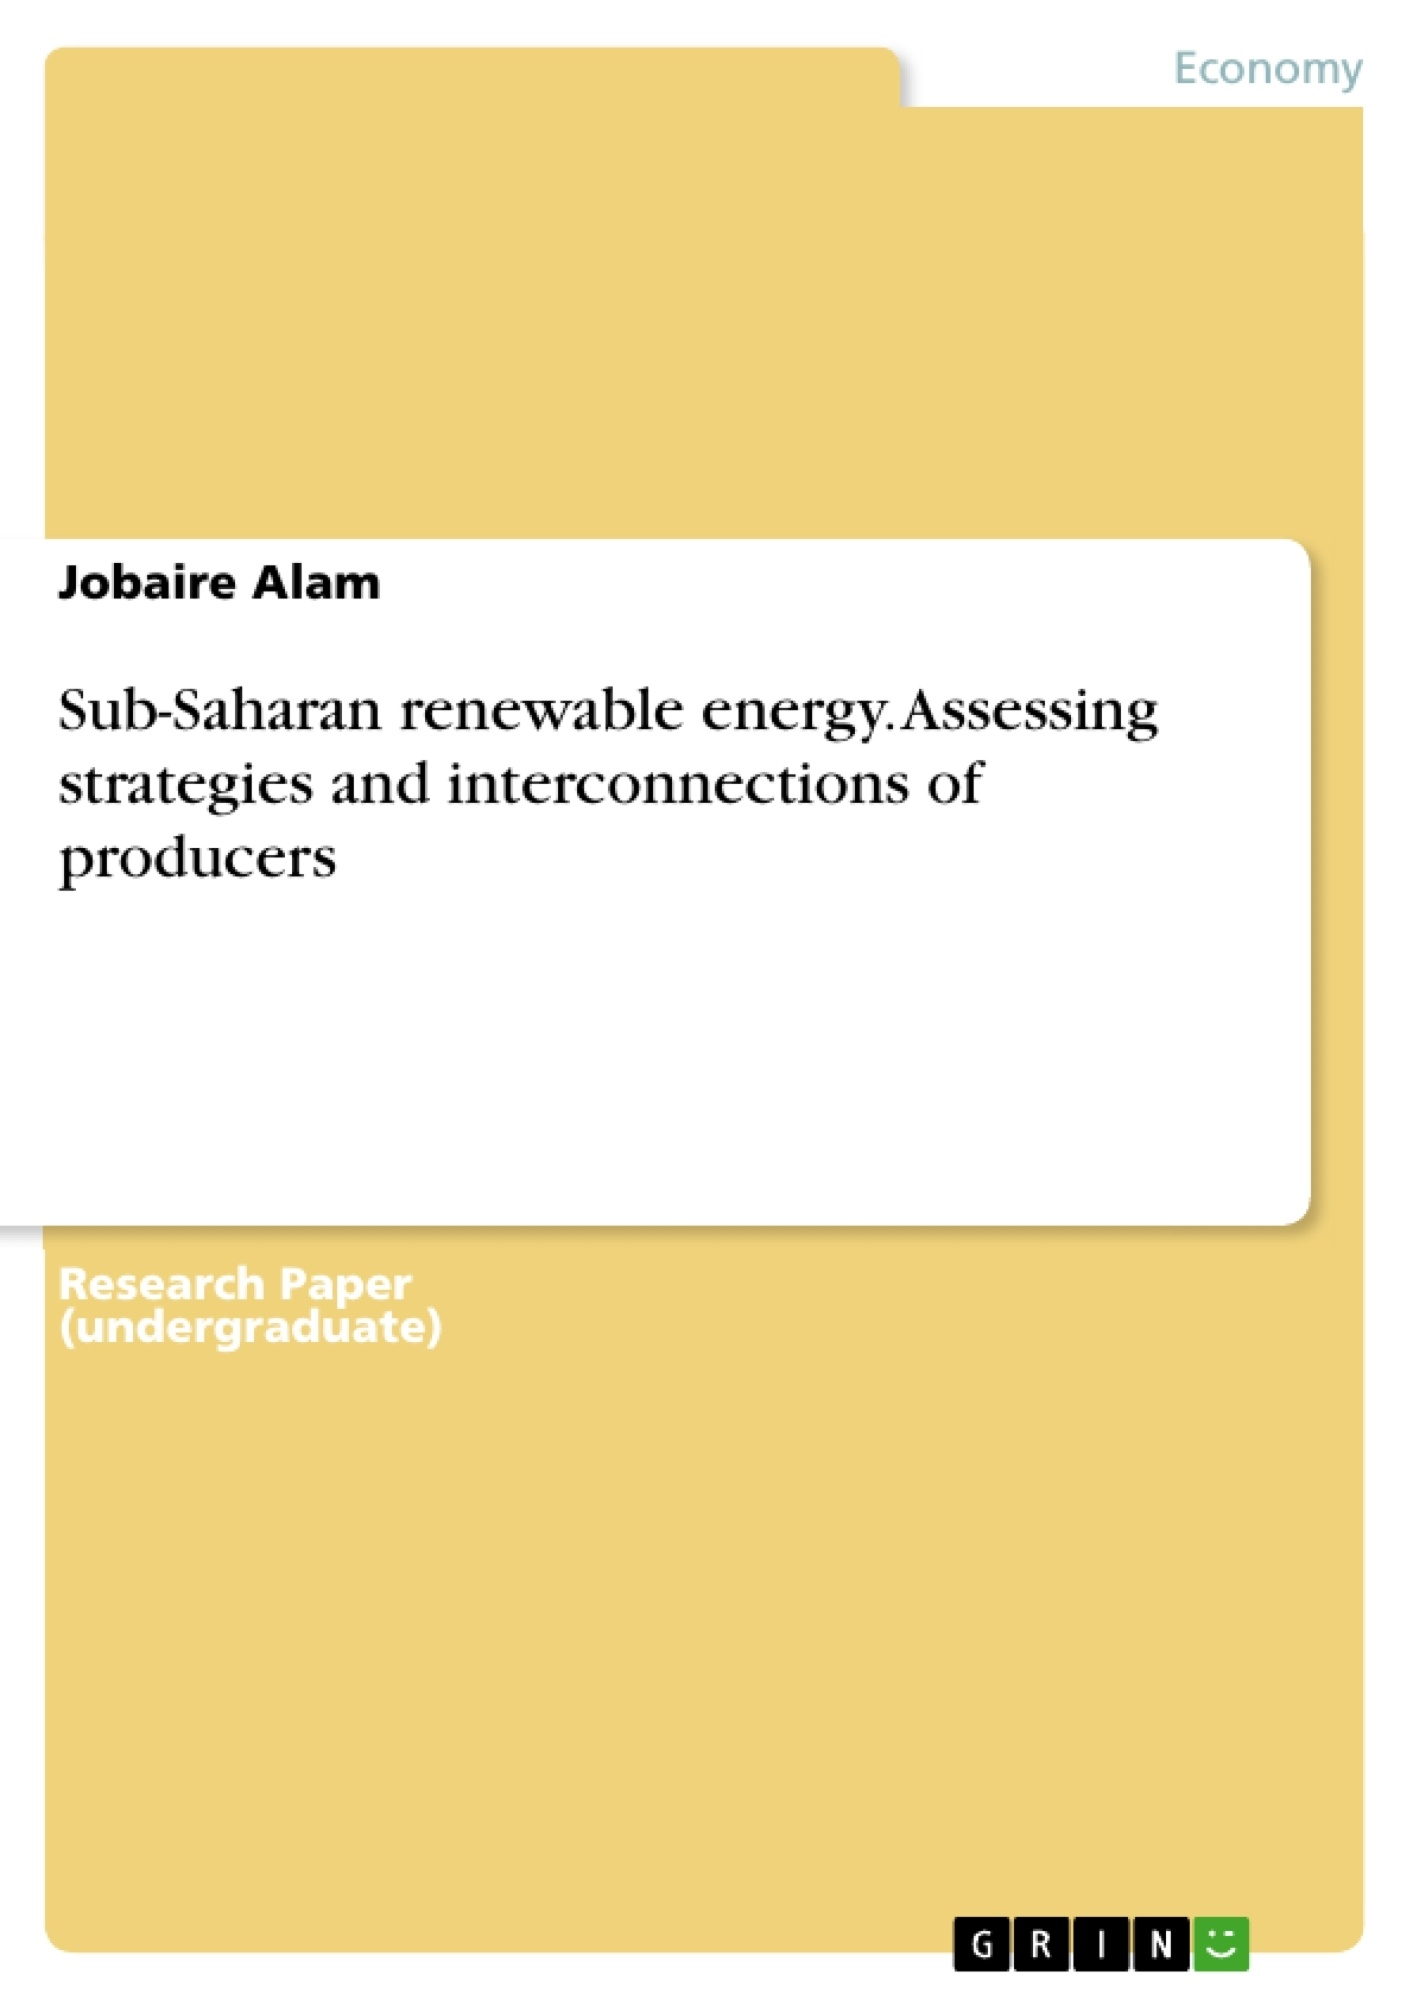 Title: Sub-Saharan renewable energy. Assessing strategies and interconnections of producers